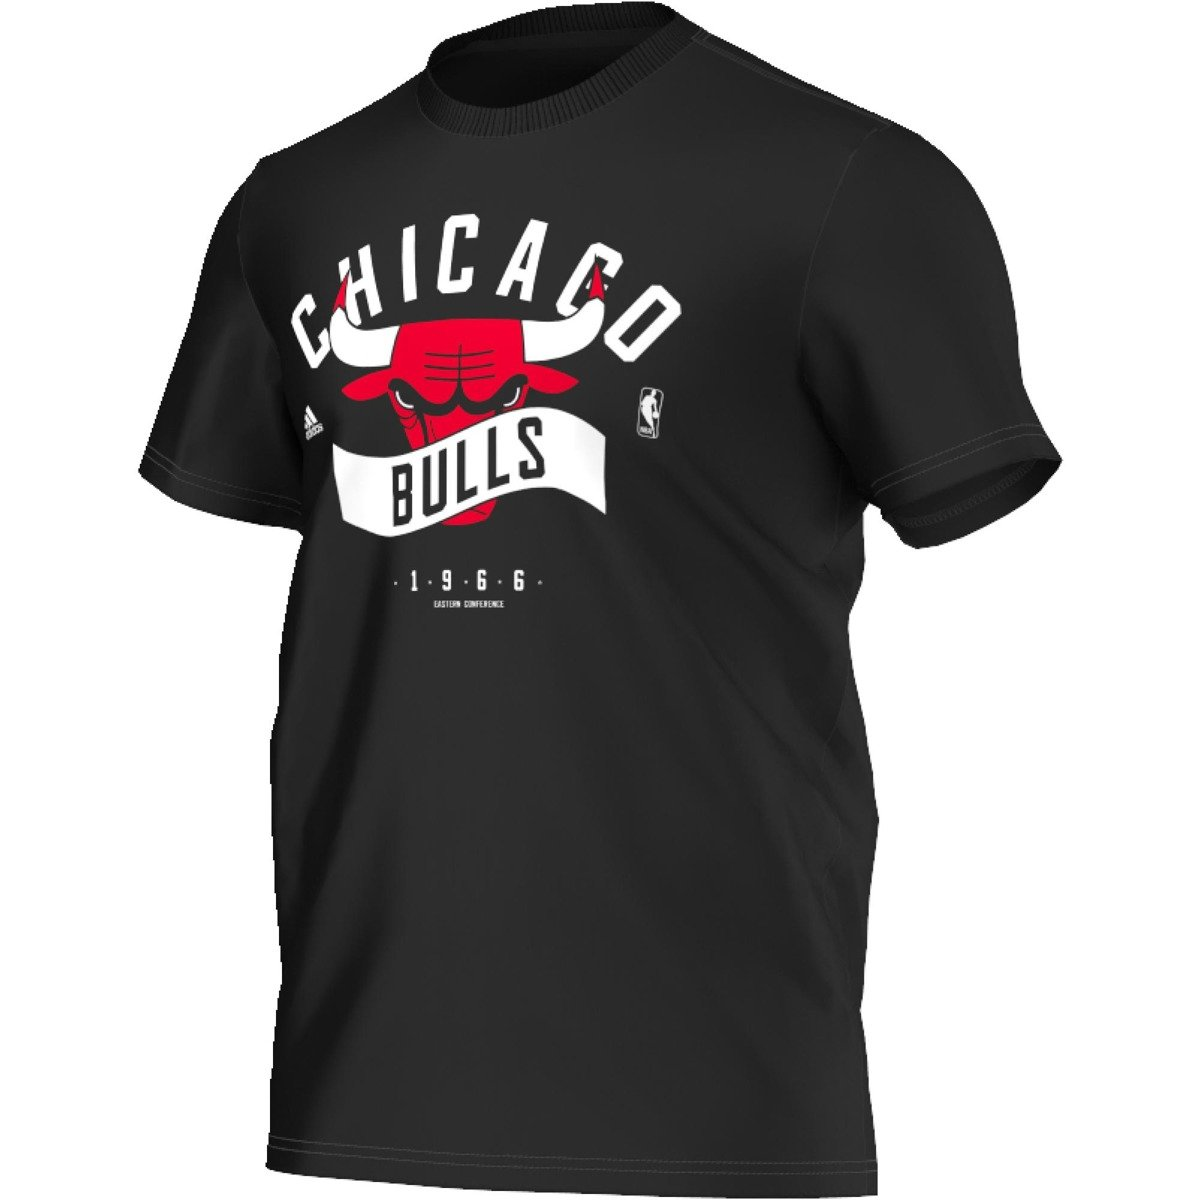 adidas chicago bulls team tee t shirt ah5069 basketball clothing casual wear t shirts. Black Bedroom Furniture Sets. Home Design Ideas